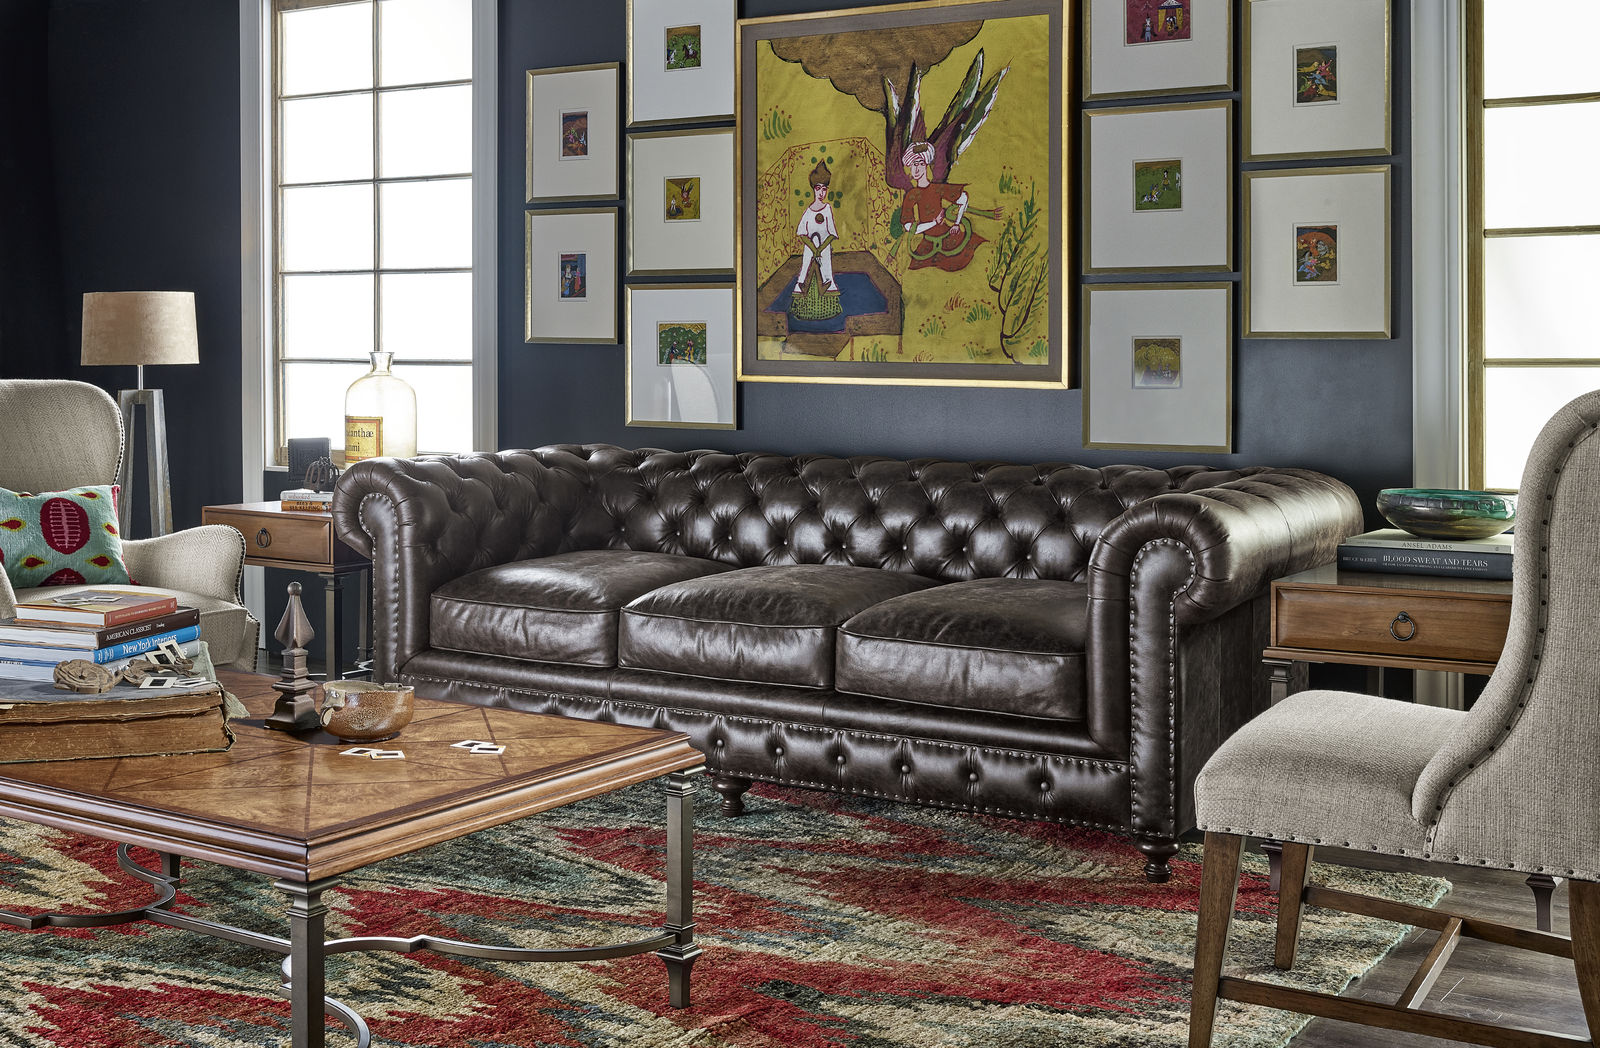 Leather sofa and gallery art wall